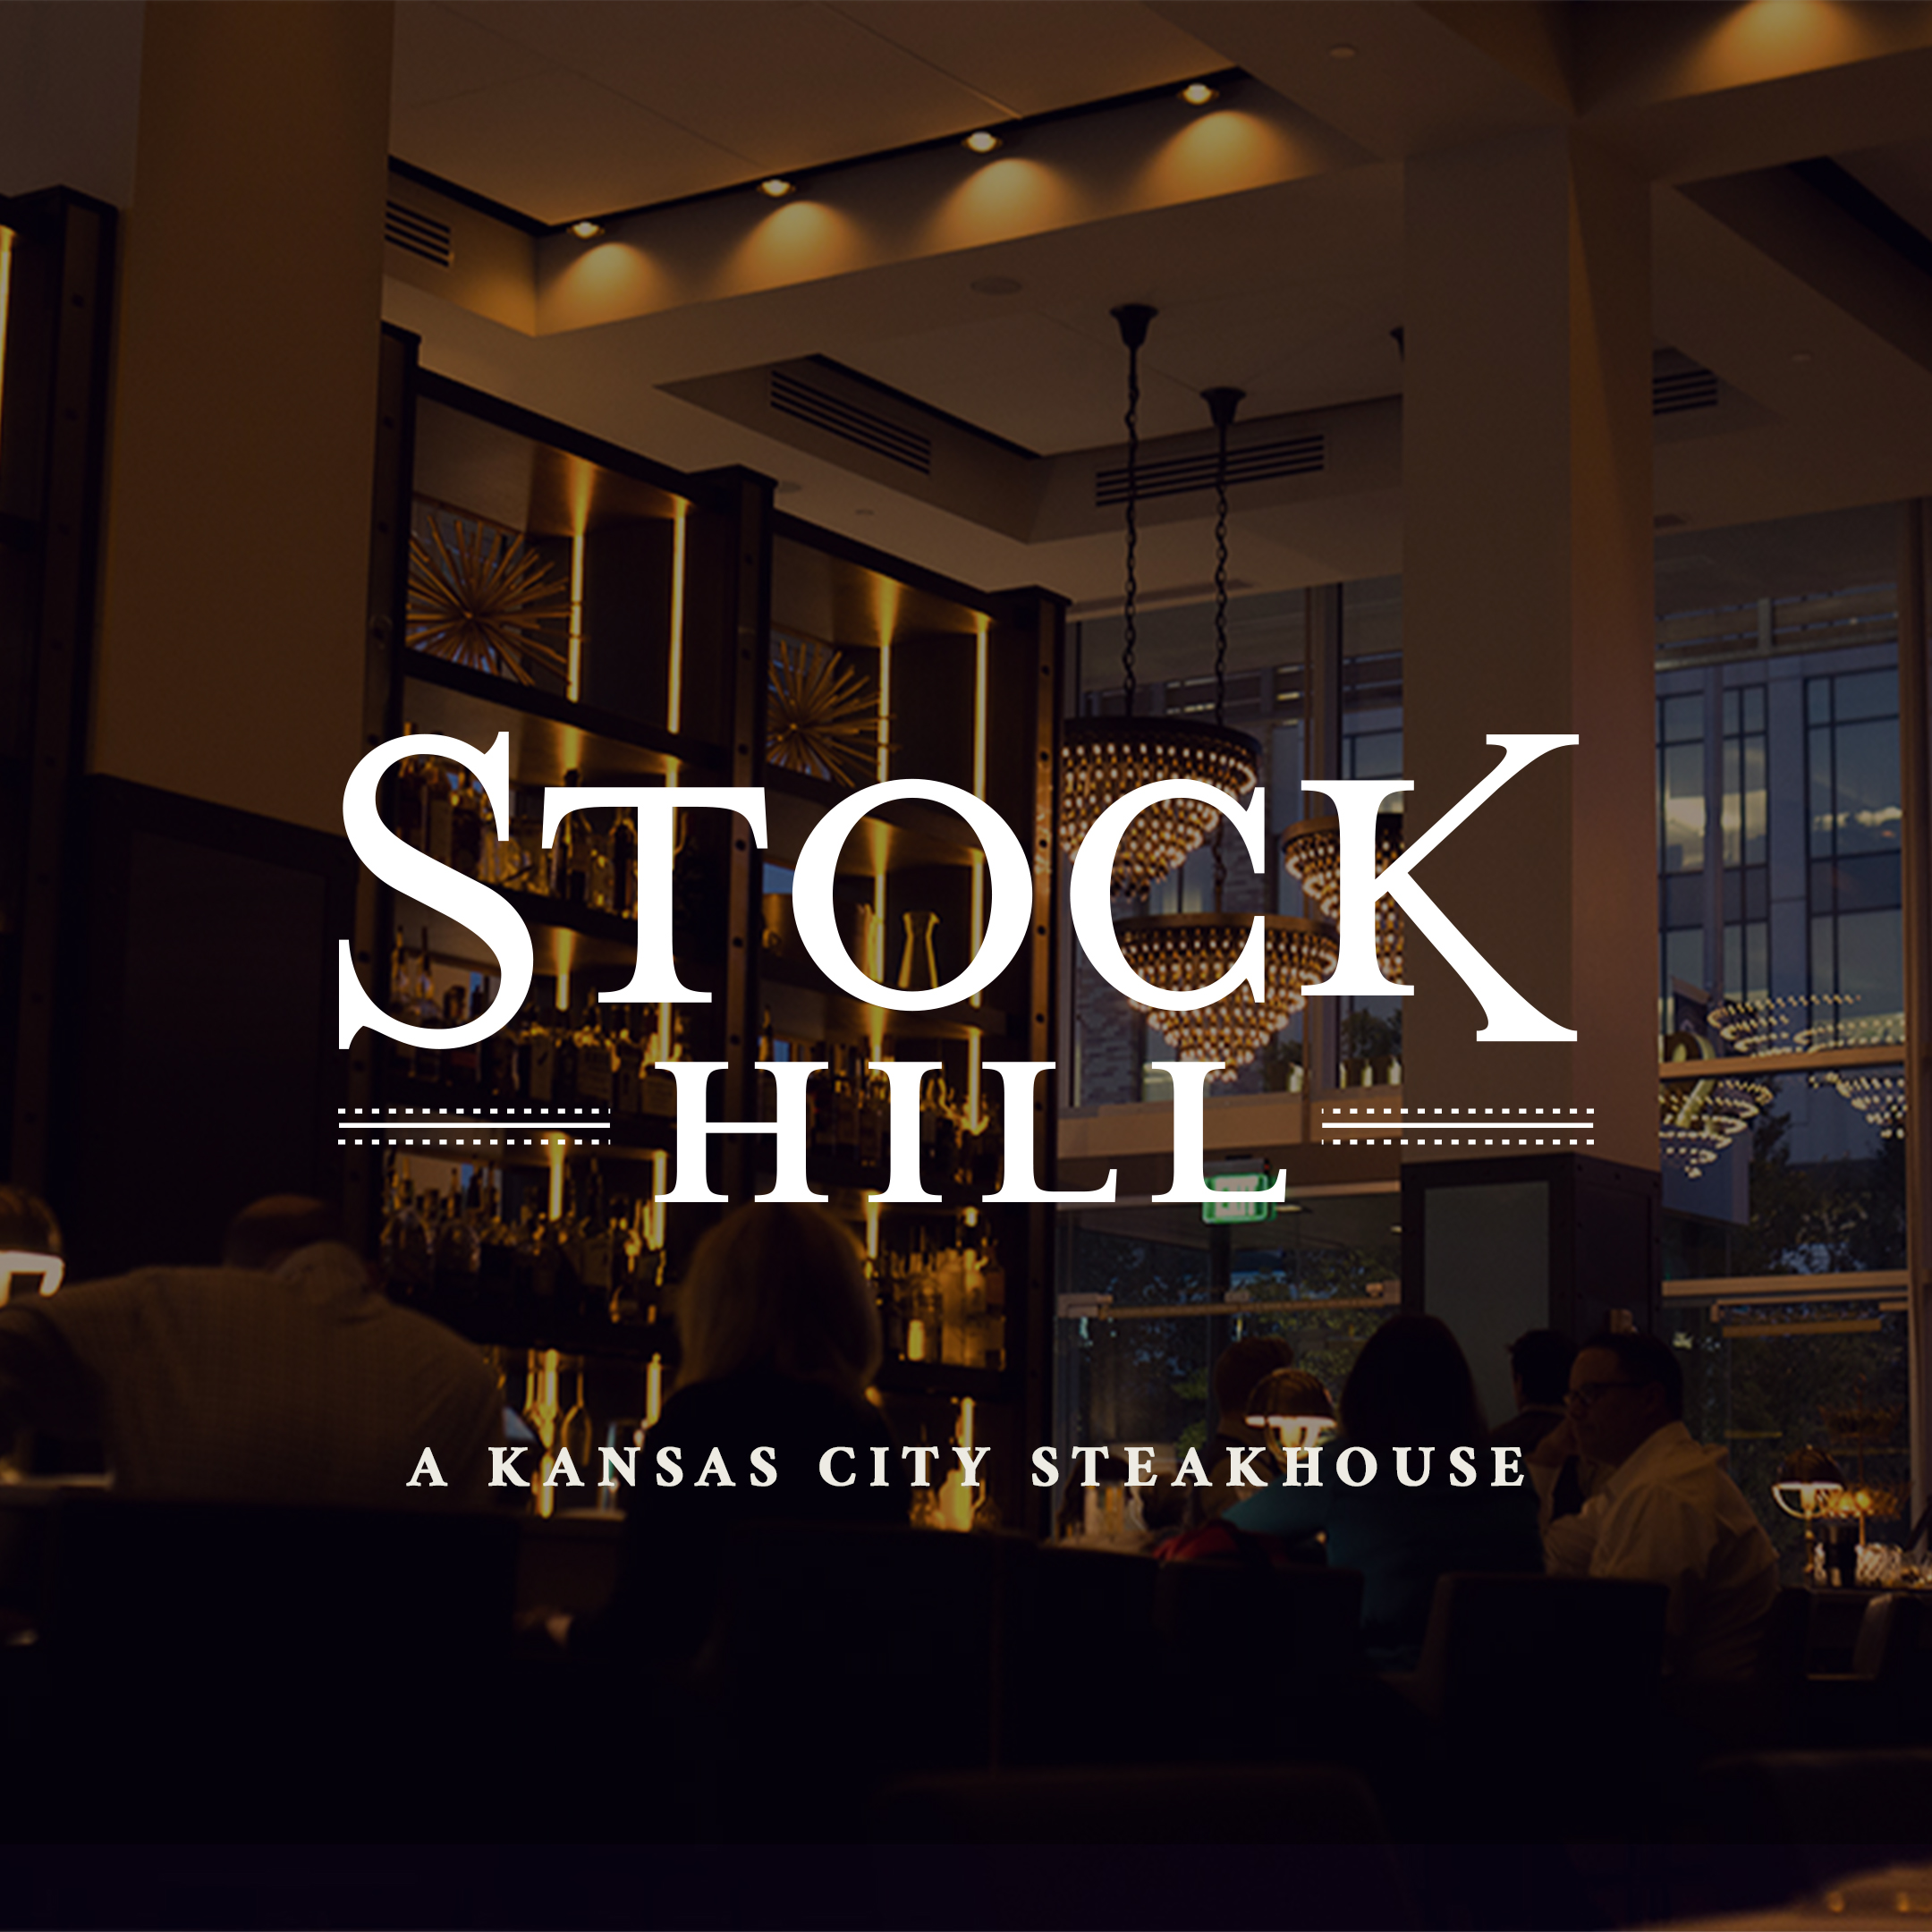 CLICK TO MAKE RESERVATIONS  AT STOCK HILL